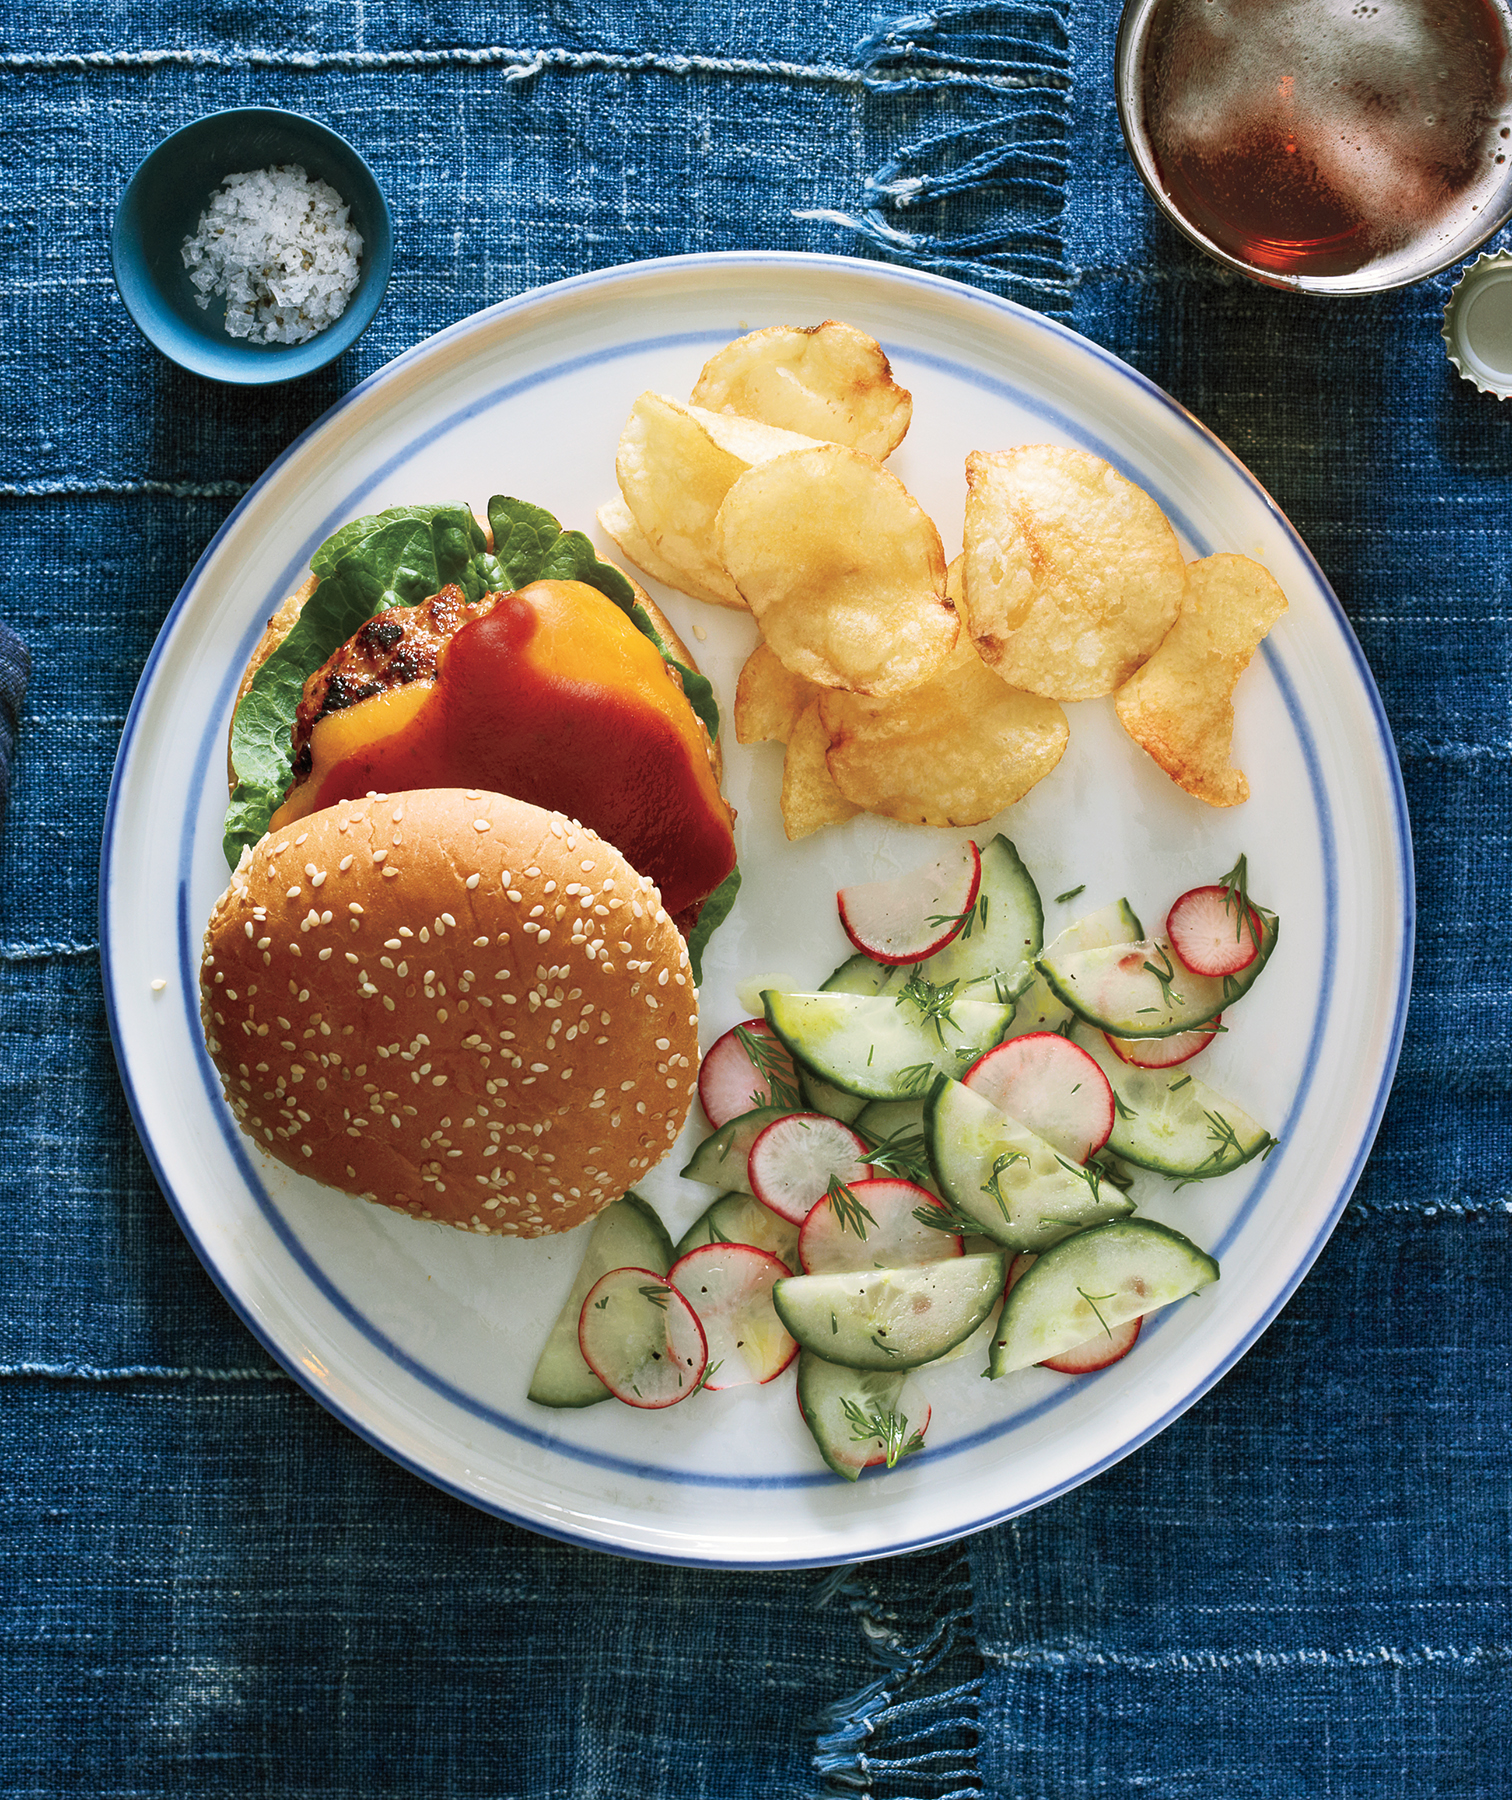 Fast Recipes: Barbecue Turkey Burgers With Cucumber Salad